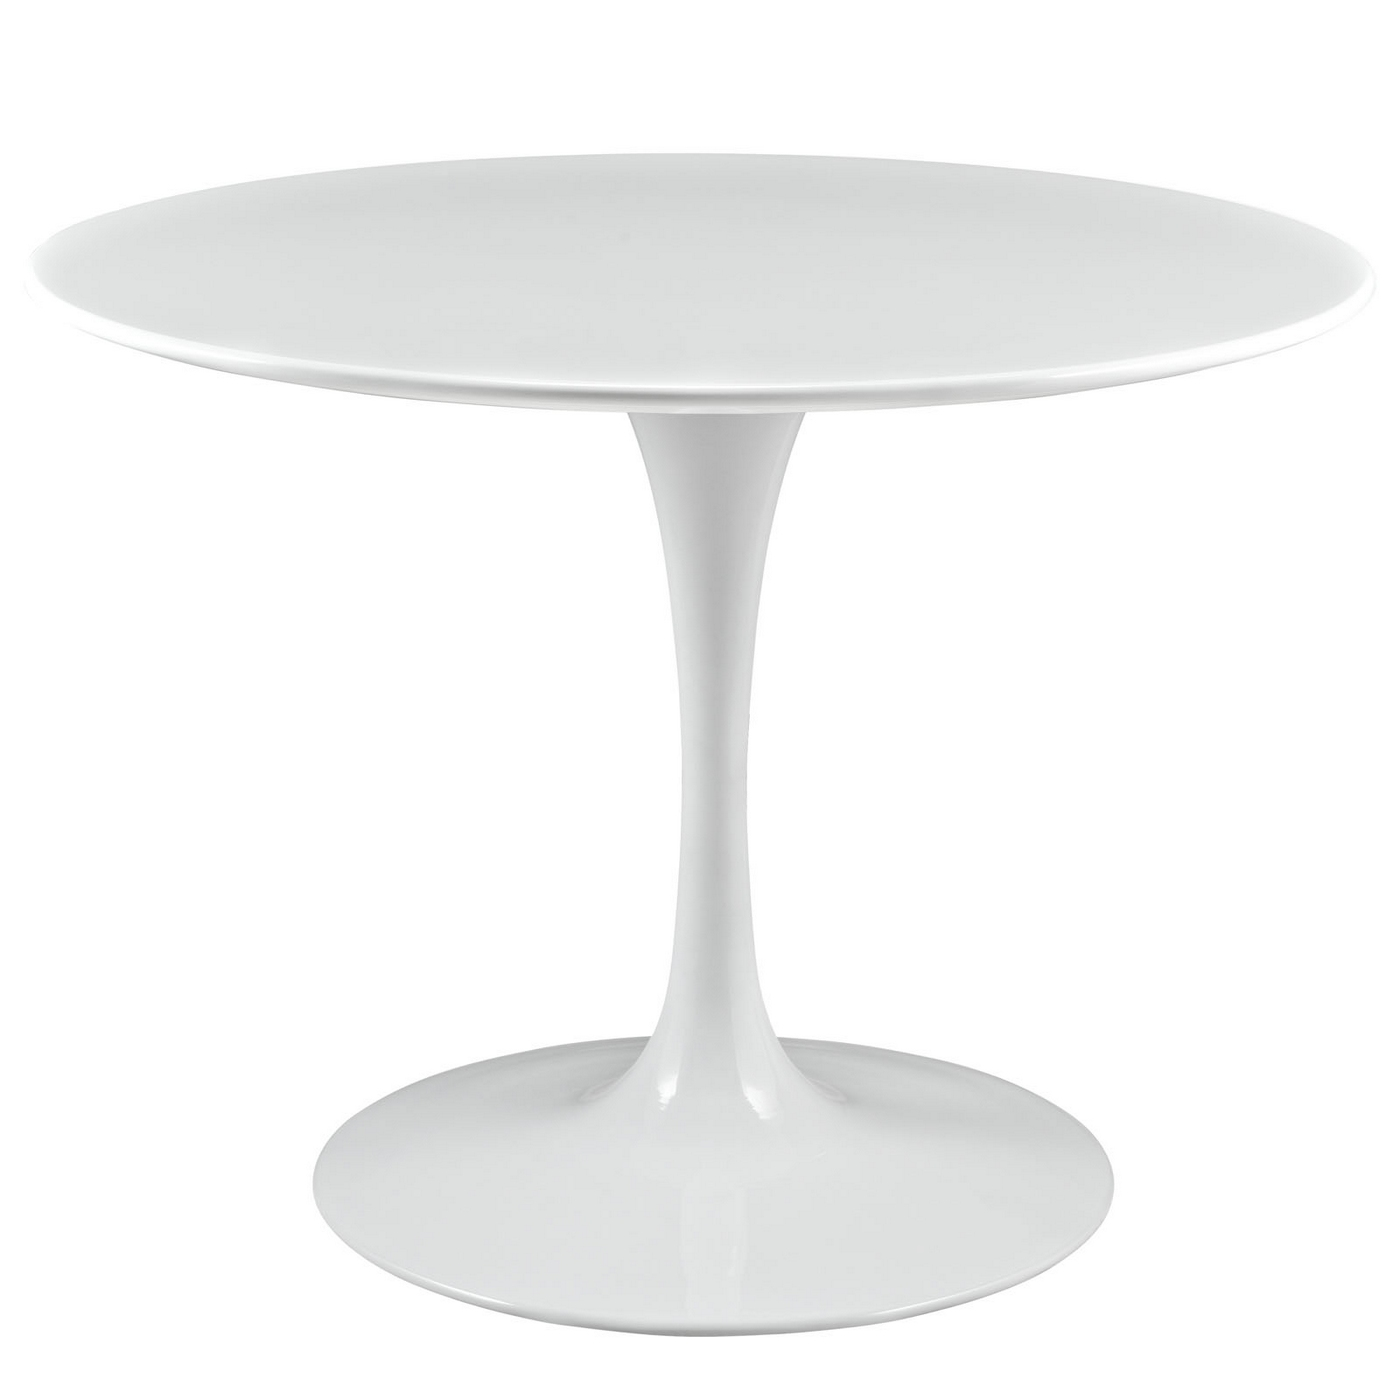 Lippa Modern 40 Round Wood Top Dining Table W Lacquered Finish White